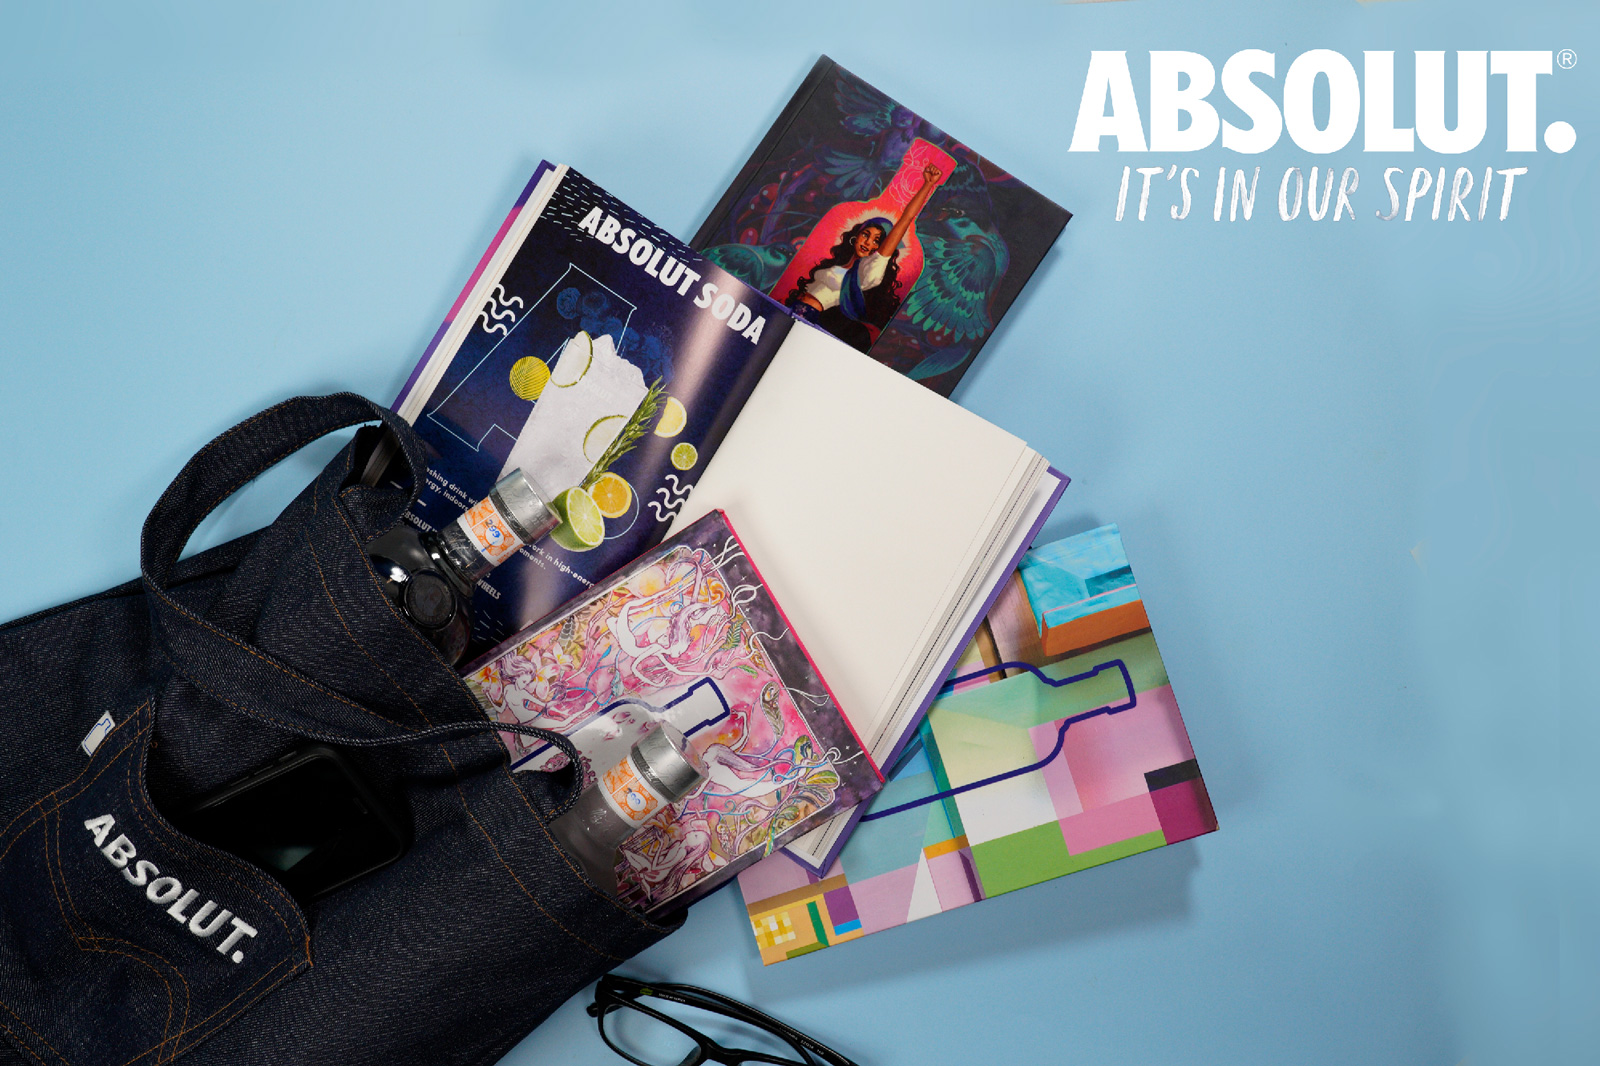 Absolut teams up with local Filipino artists to help uplift spirits